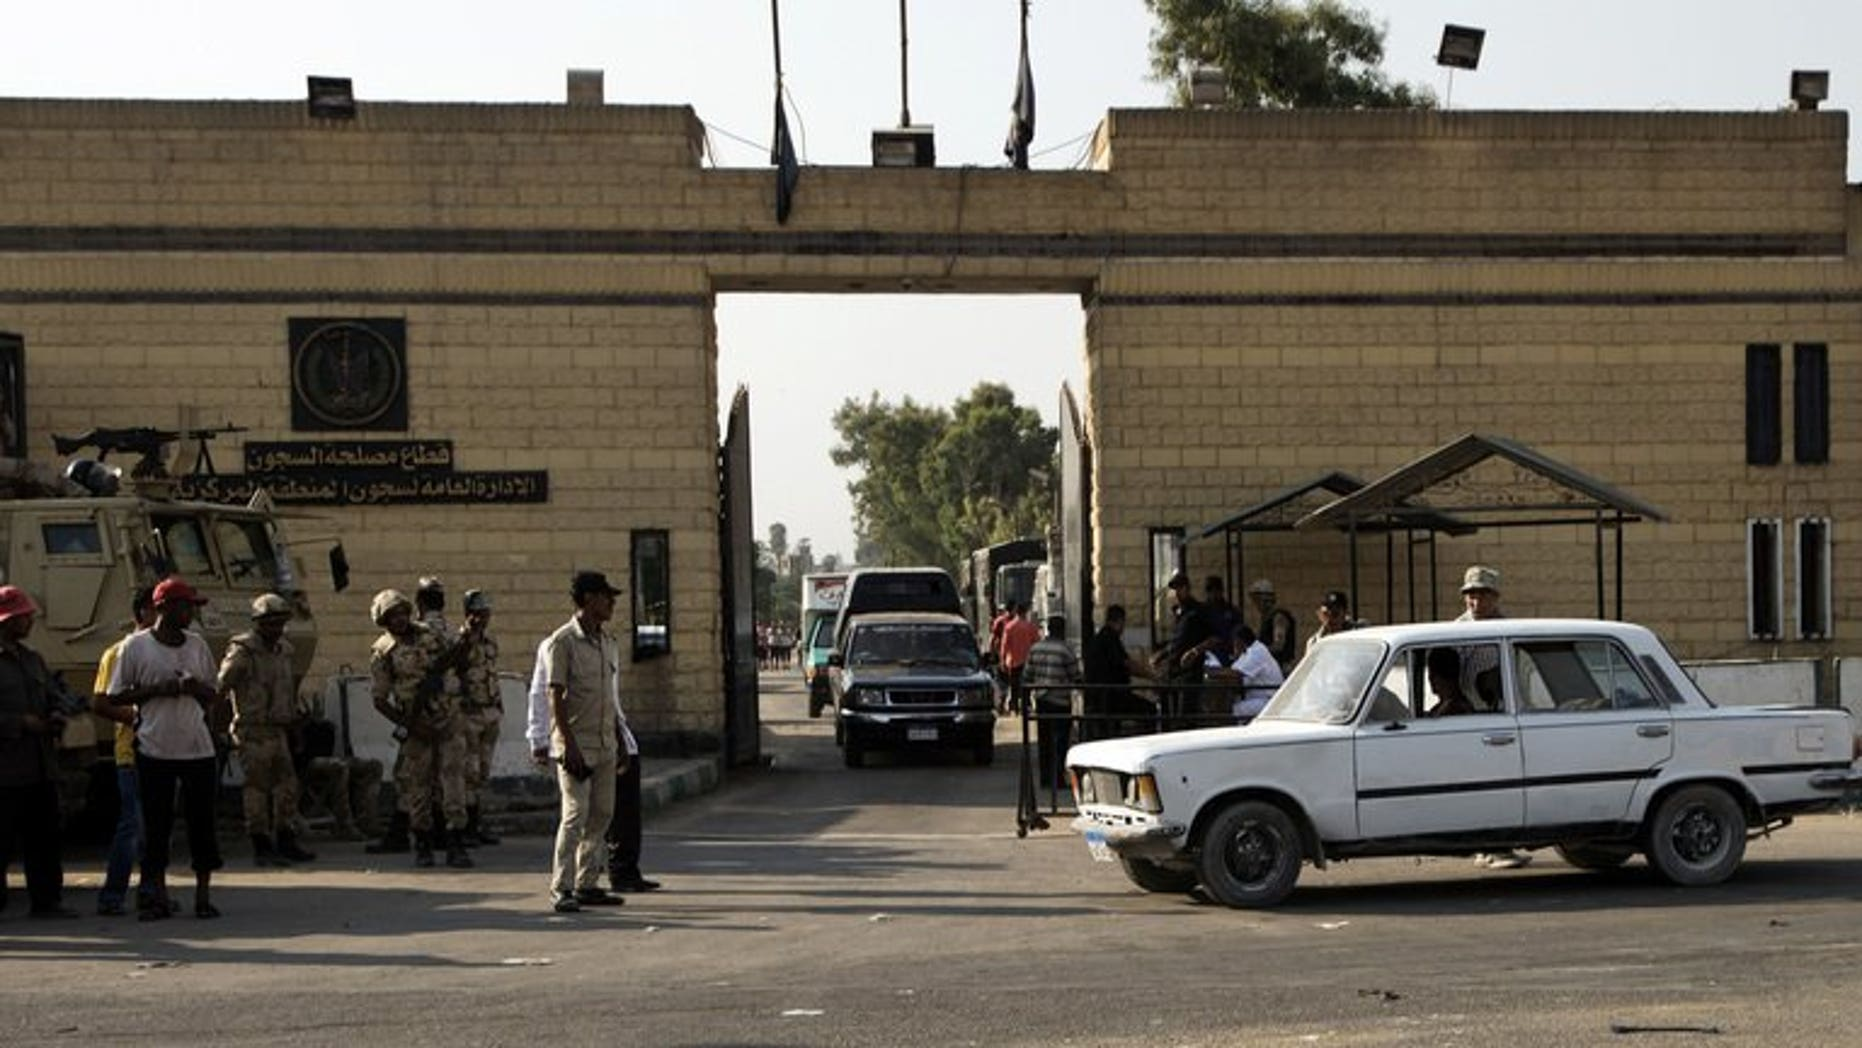 Egyptian security forces stand guard outside one of the gate of the Tora prison where former Egyptian president Hosni Mubarak is detained on August 21, 2013 in Cairo. Egyptians awaited Thursday the possible release of Mubarak after a court ordered he be freed pending his re-trial on charges of complicity in the deaths of protesters, and other crimes.